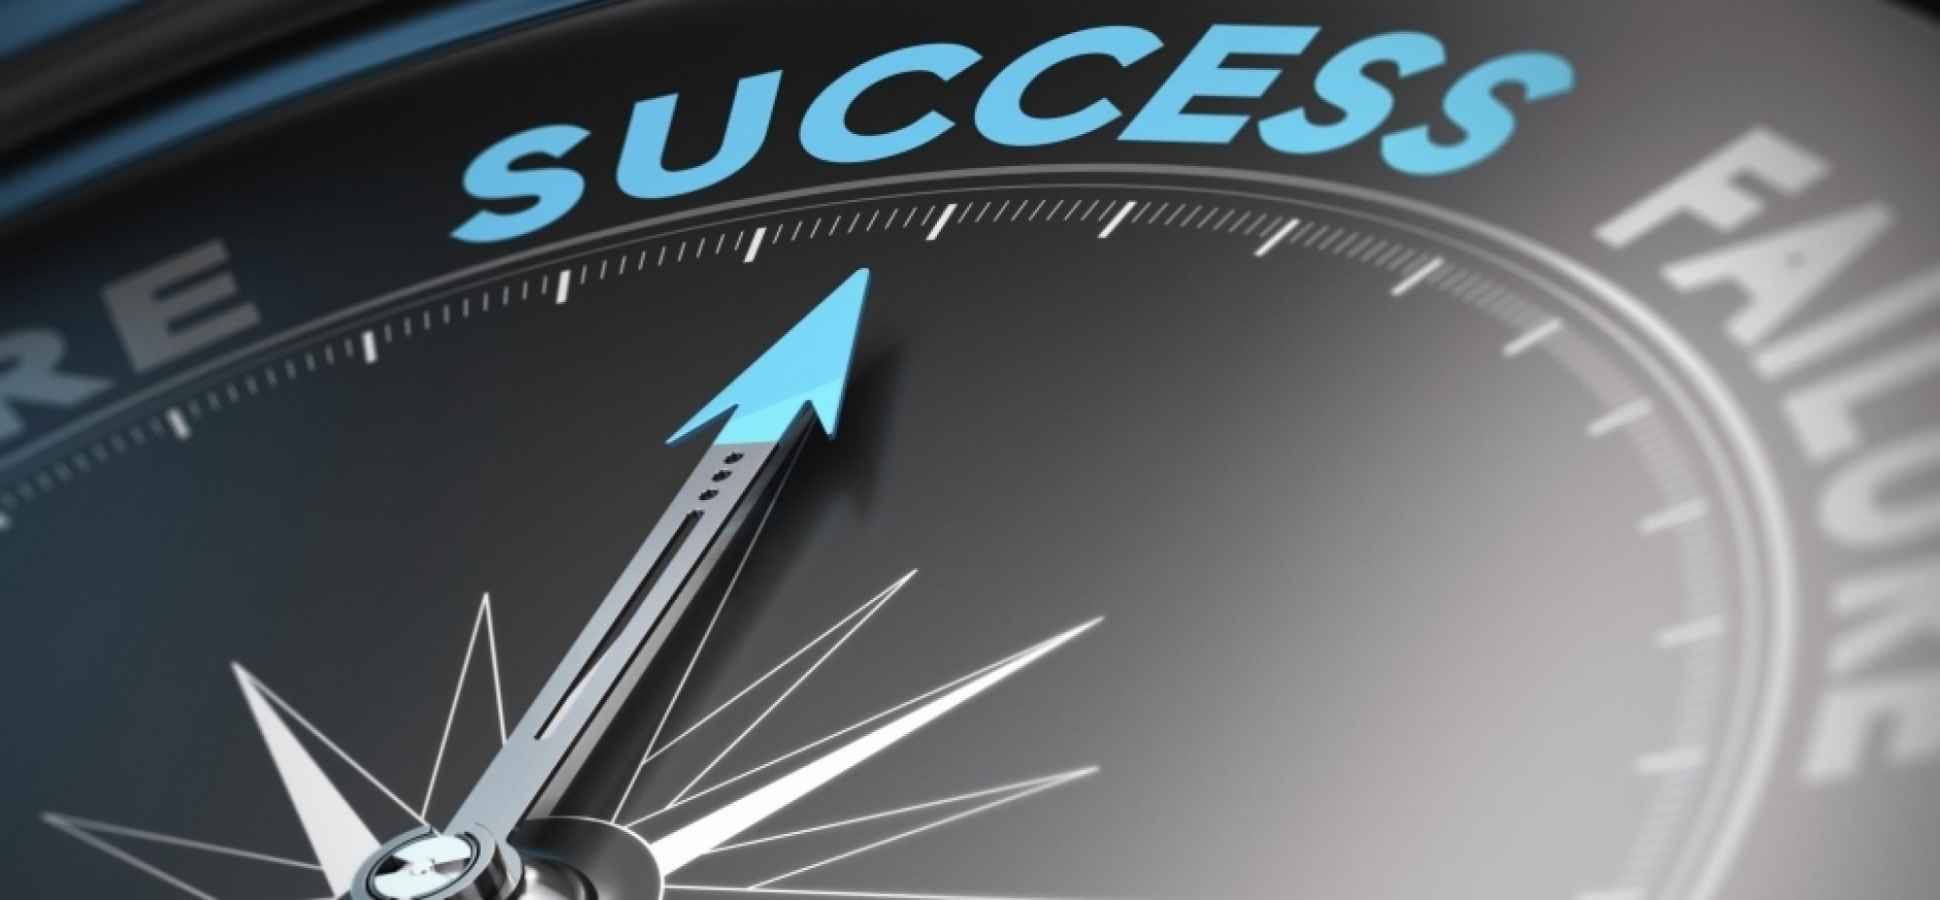 5 Things Great Leaders Focus On for Success